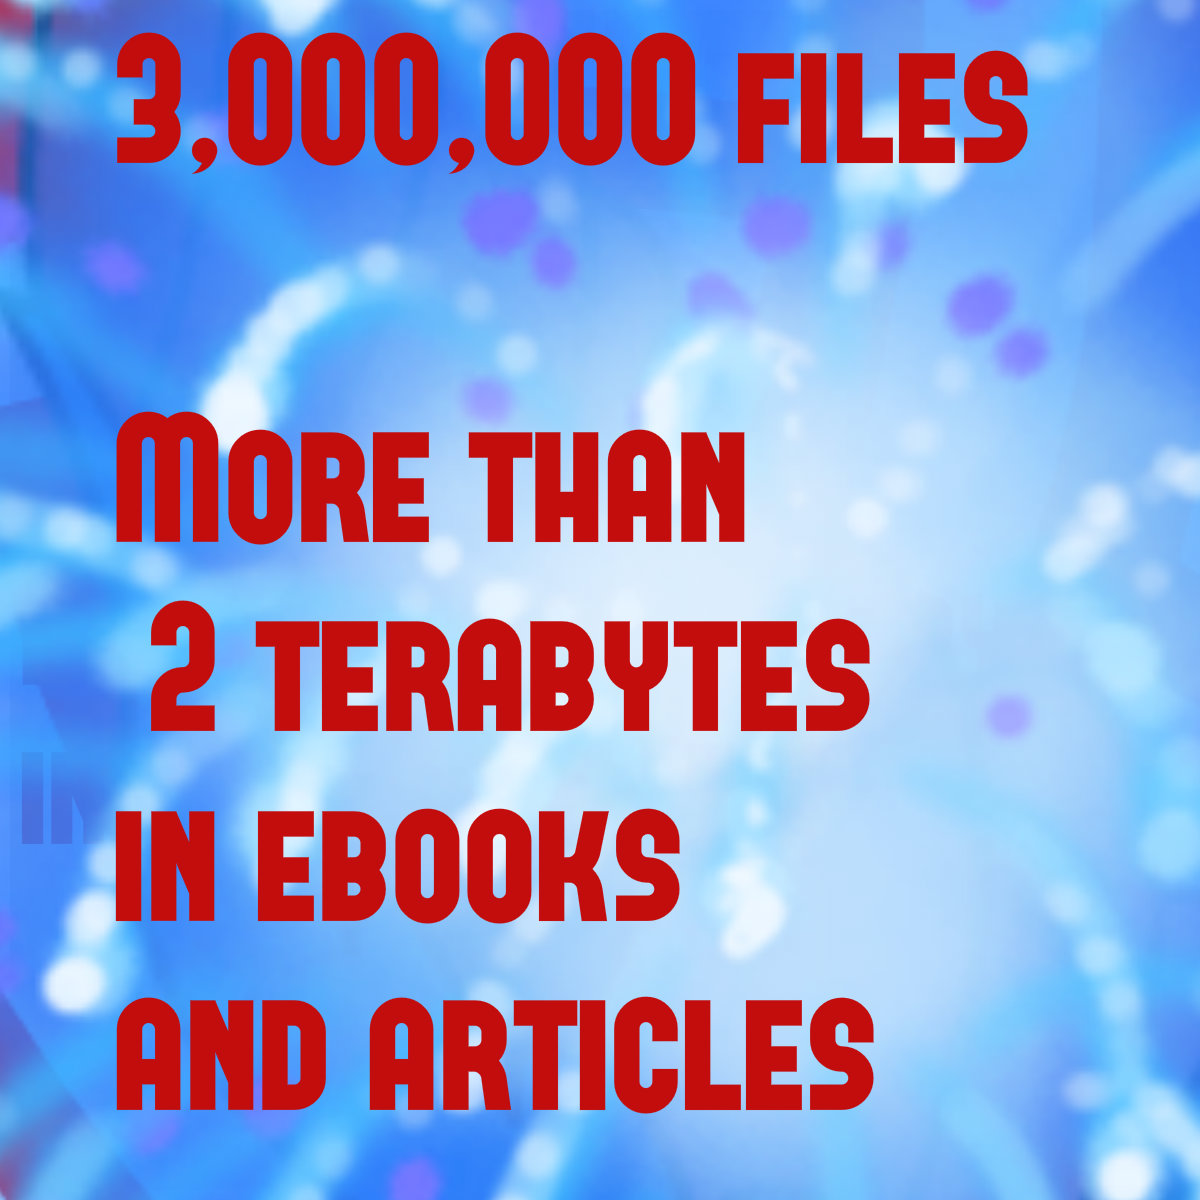 give more than two million articles and ebooks